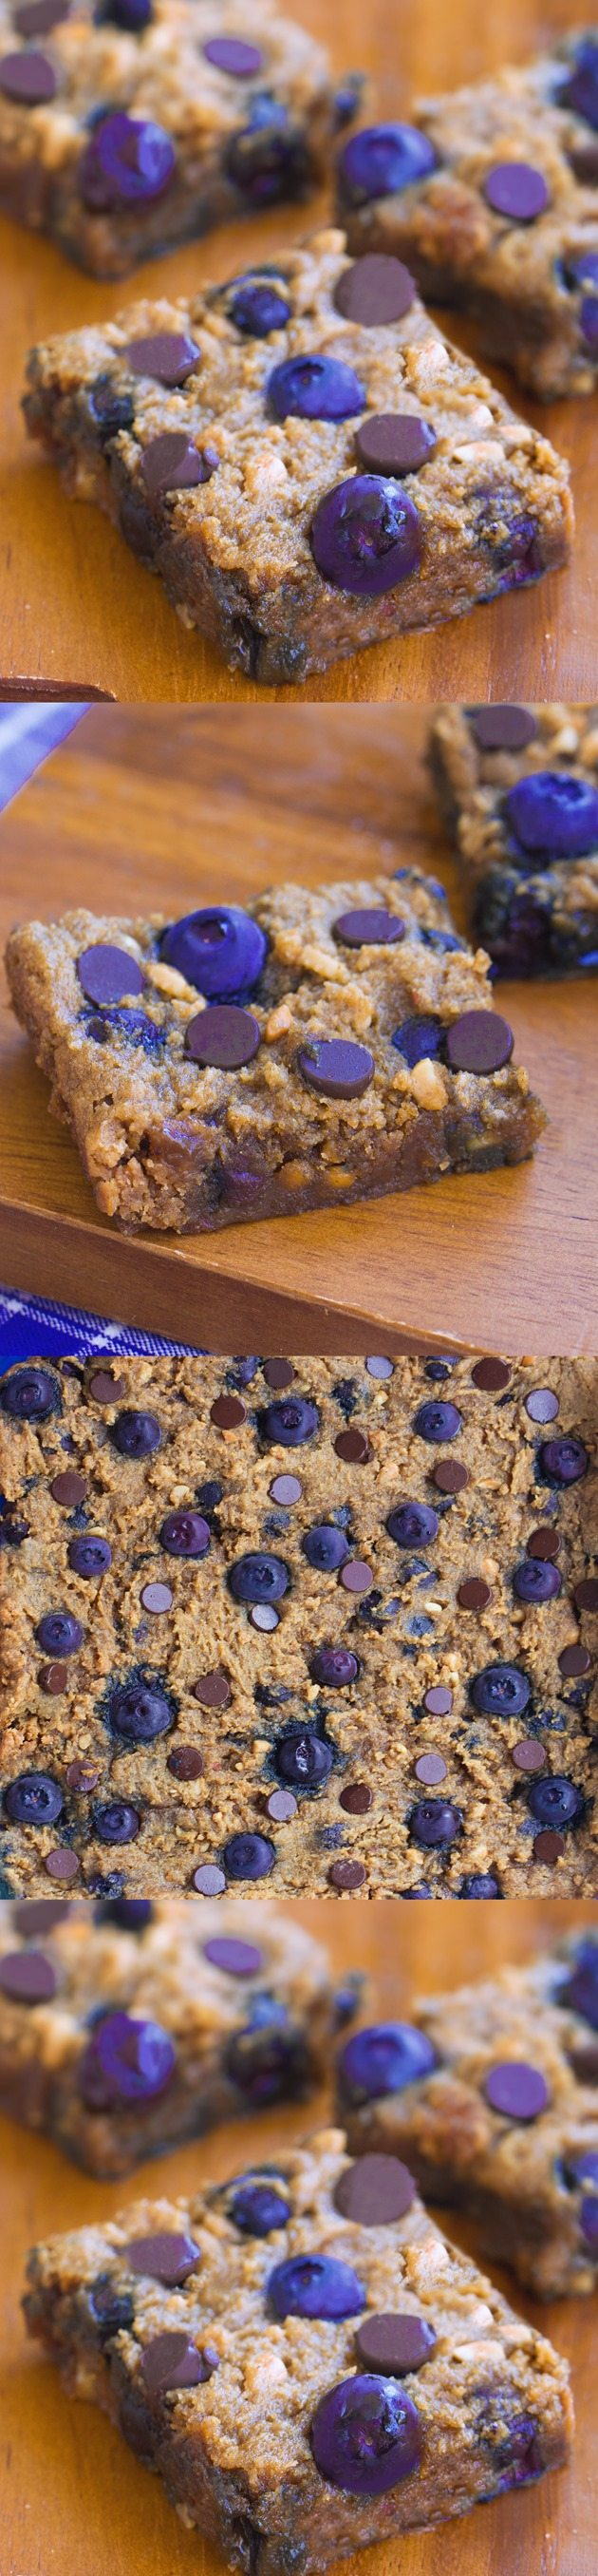 Crazy addictive chocolate chip cookie bars... like the lovechild of a chocolate chip cookie and a blueberry pie! Recipe link: https://chocolatecoveredkatie.com/2015/08/13/chocolate-chip-blueberry-bars-flourless/